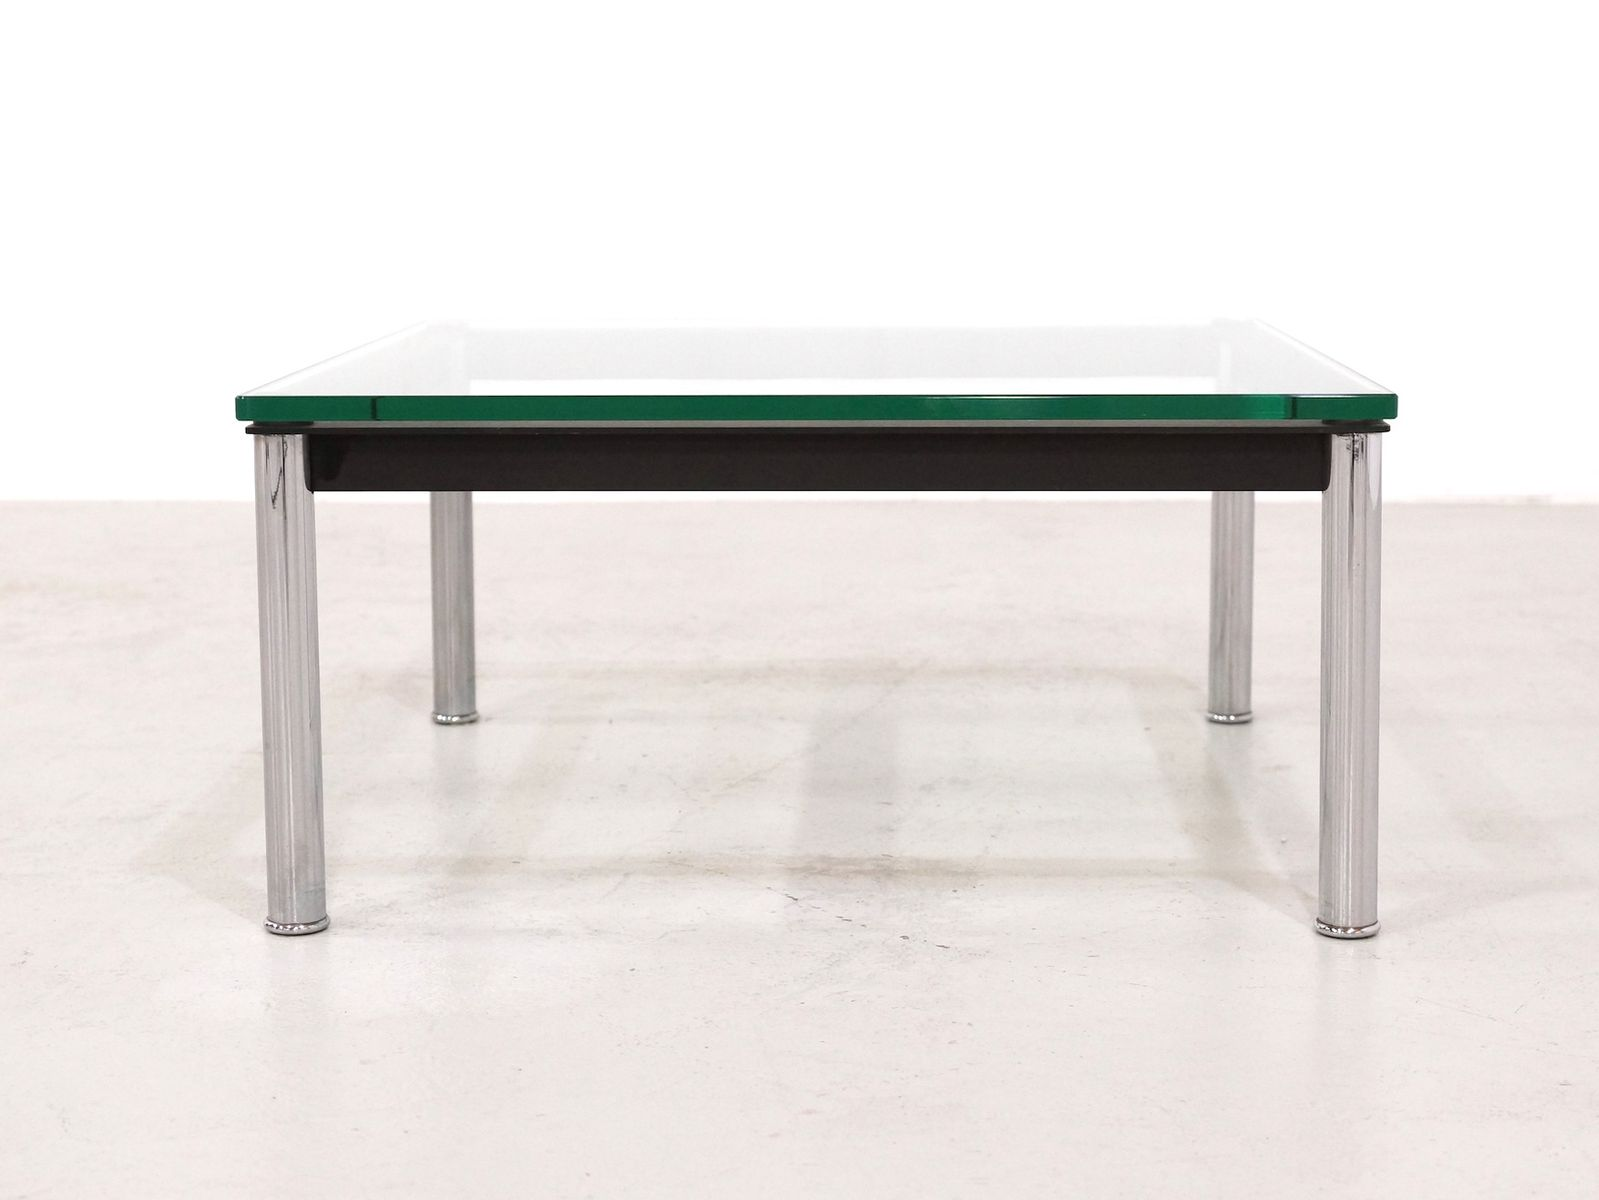 Lc10 Glass Table By Le Corbusier For Cassina 1980s For Sale At Pamono